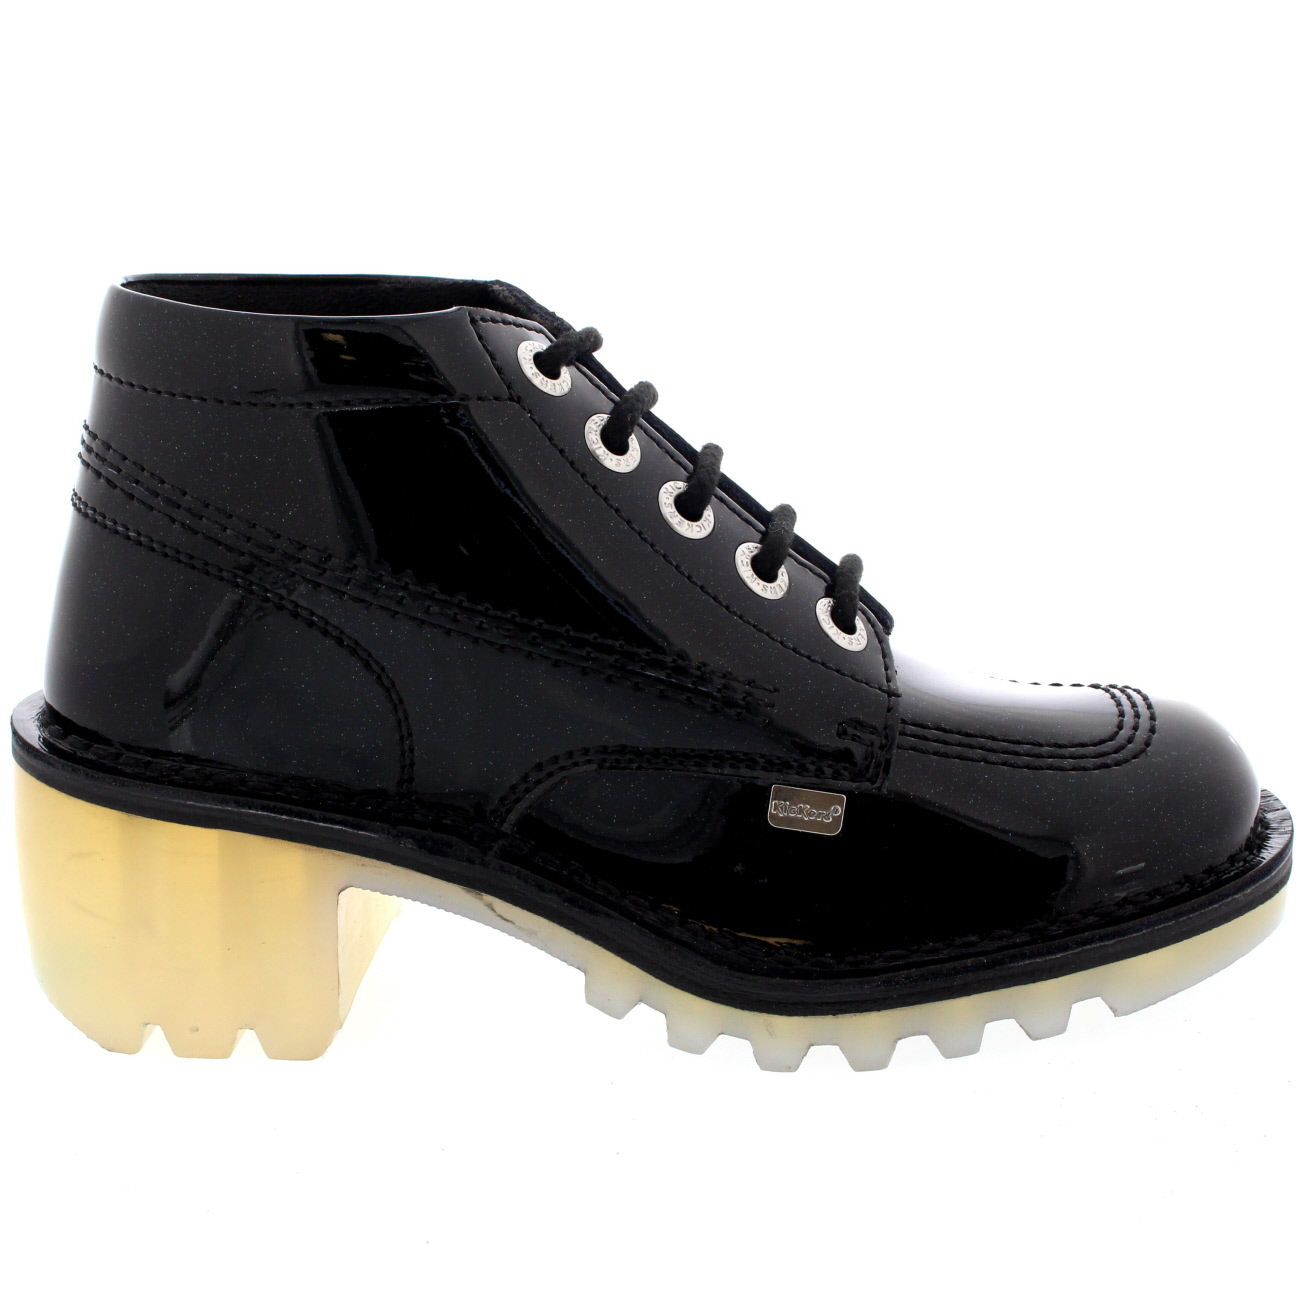 Ladies-Kickers-Kopey-Hi-Patent-Leather-Laced-High-